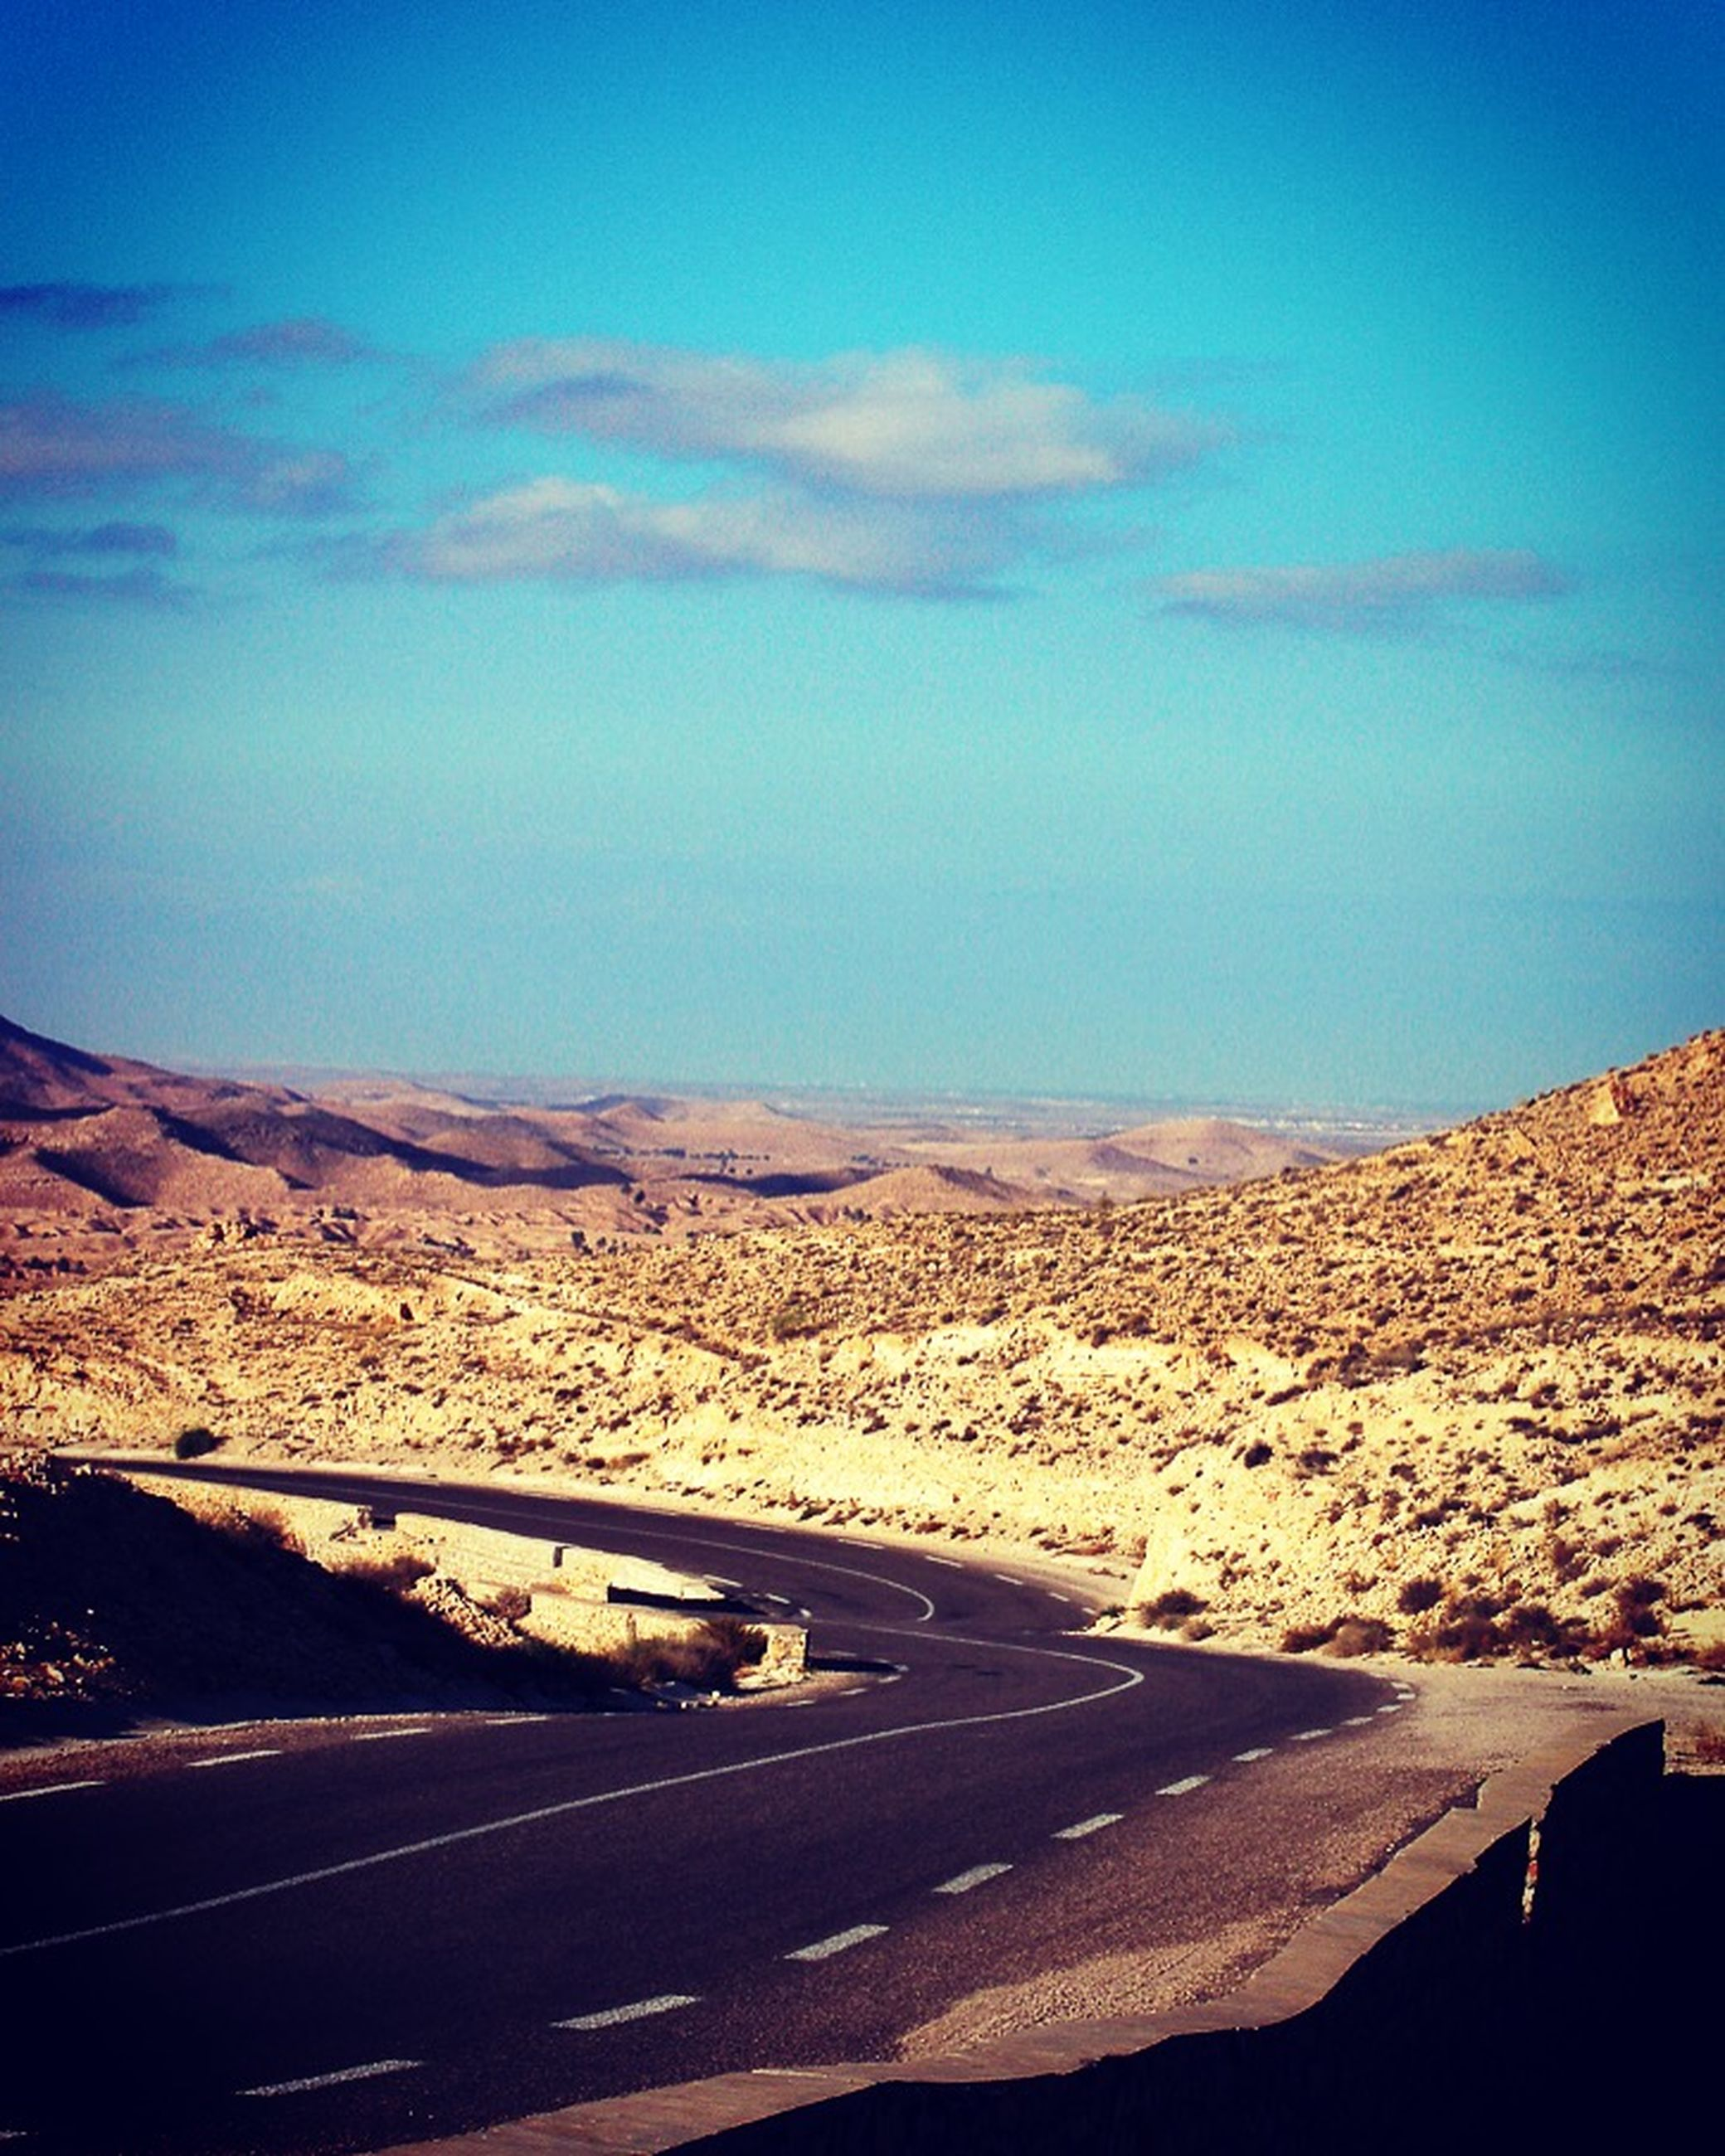 landscape, road, blue, sky, tranquil scene, desert, tranquility, mountain, transportation, scenics, the way forward, nature, beauty in nature, horizon over land, remote, road marking, non-urban scene, arid climate, cloud, country road